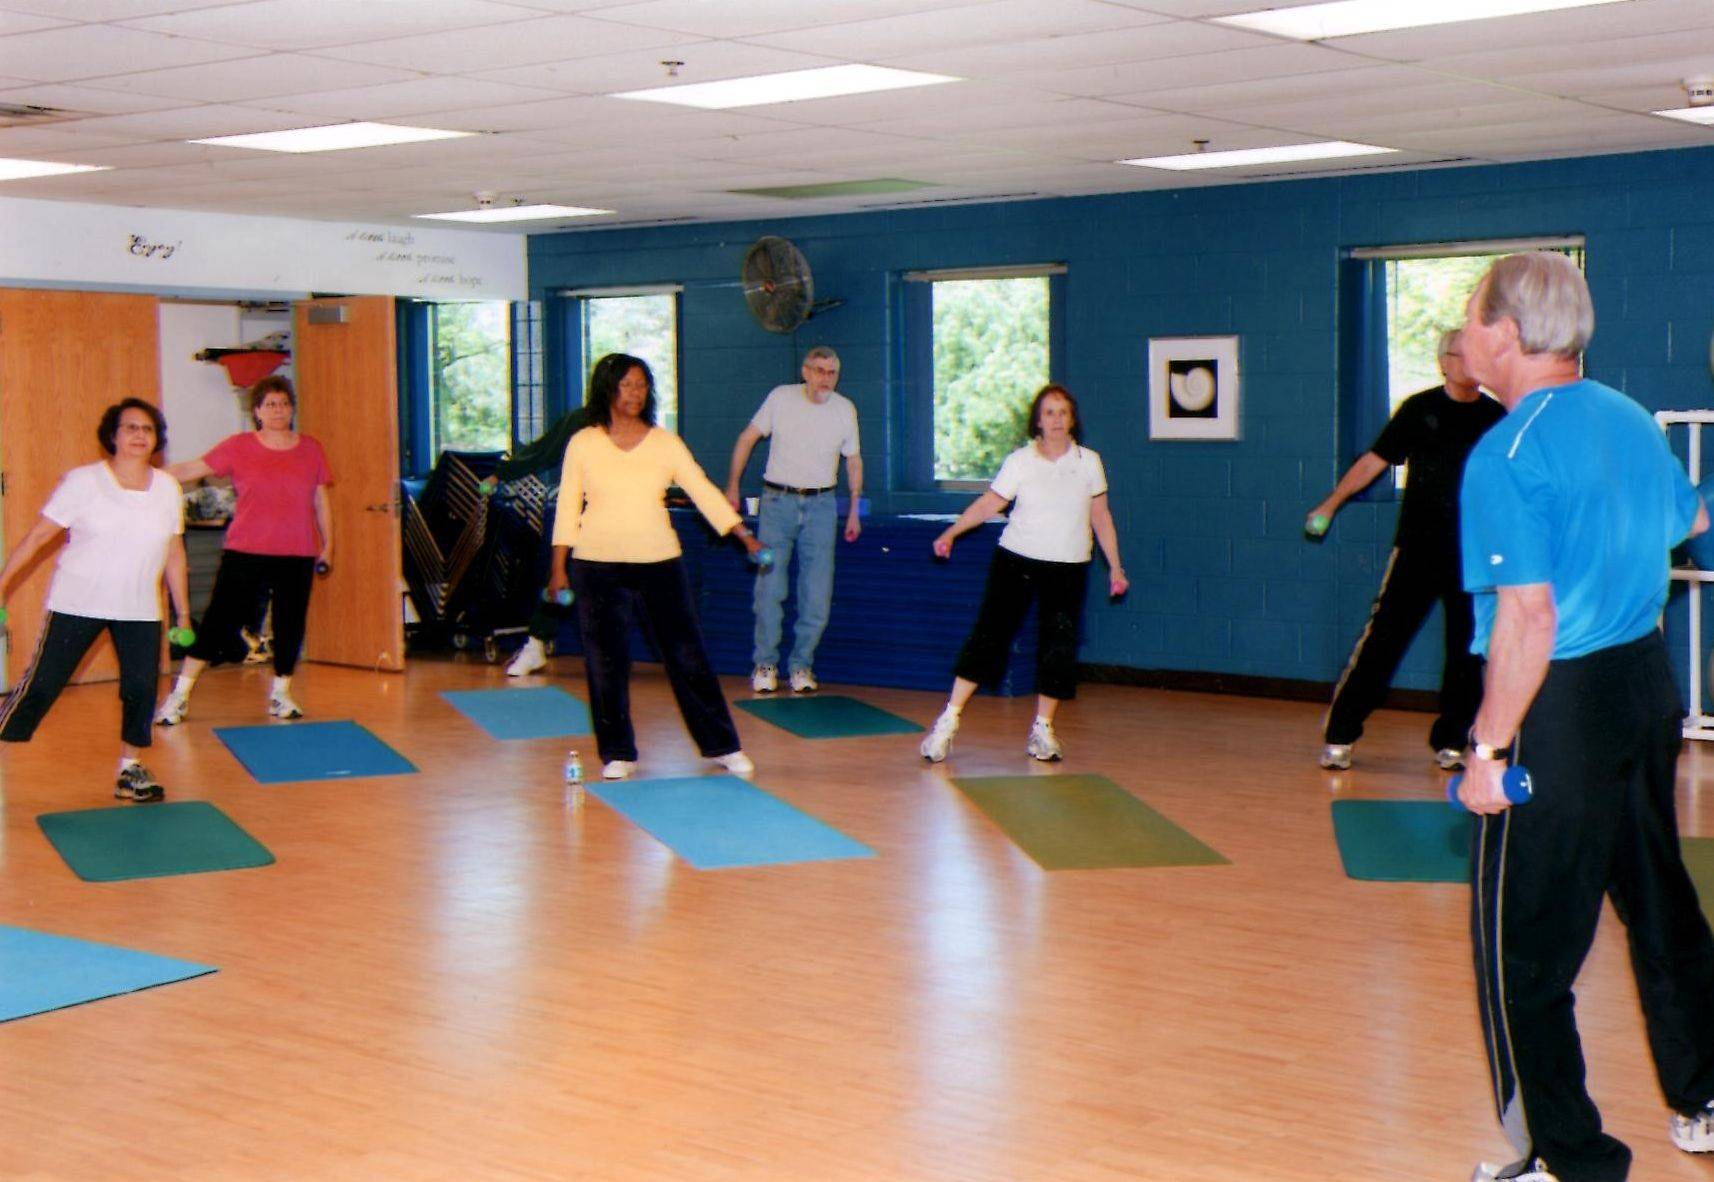 John Keller leads a senior fitness class in resistance band exercises. Keller and Bernie Klos have opened Rehabitations, Inc. in Libertyville, which offers fitness classes for seniors, priced at just $3 a class.